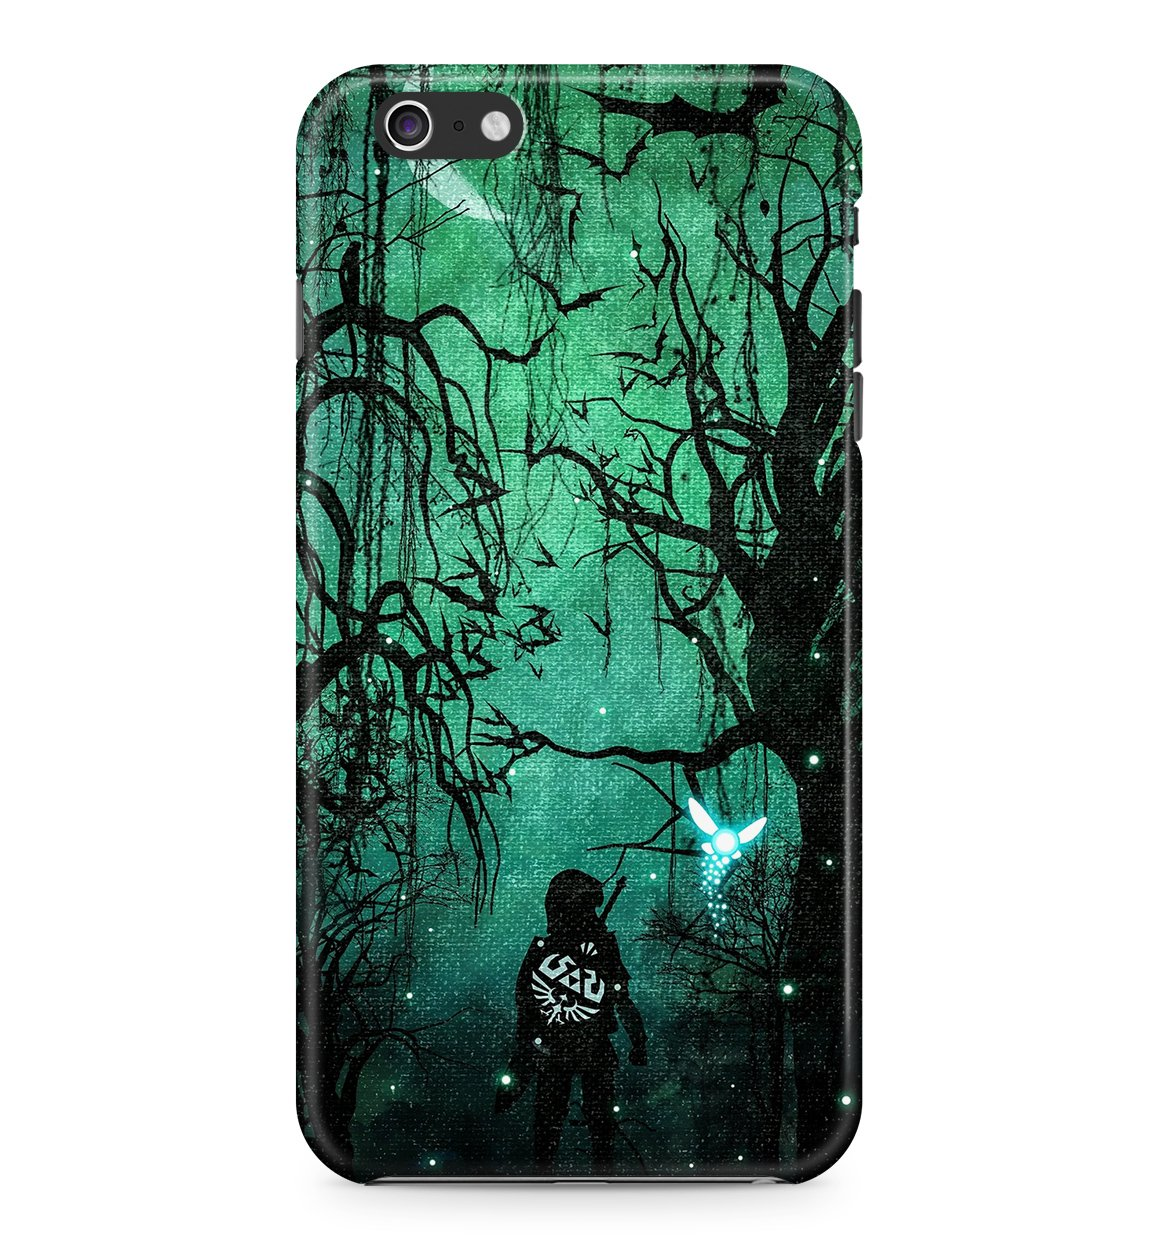 Legends Of Zelda Hard Plastic Snap-On Case Skin Cover For Iphone 6 / Iphone 6S 2